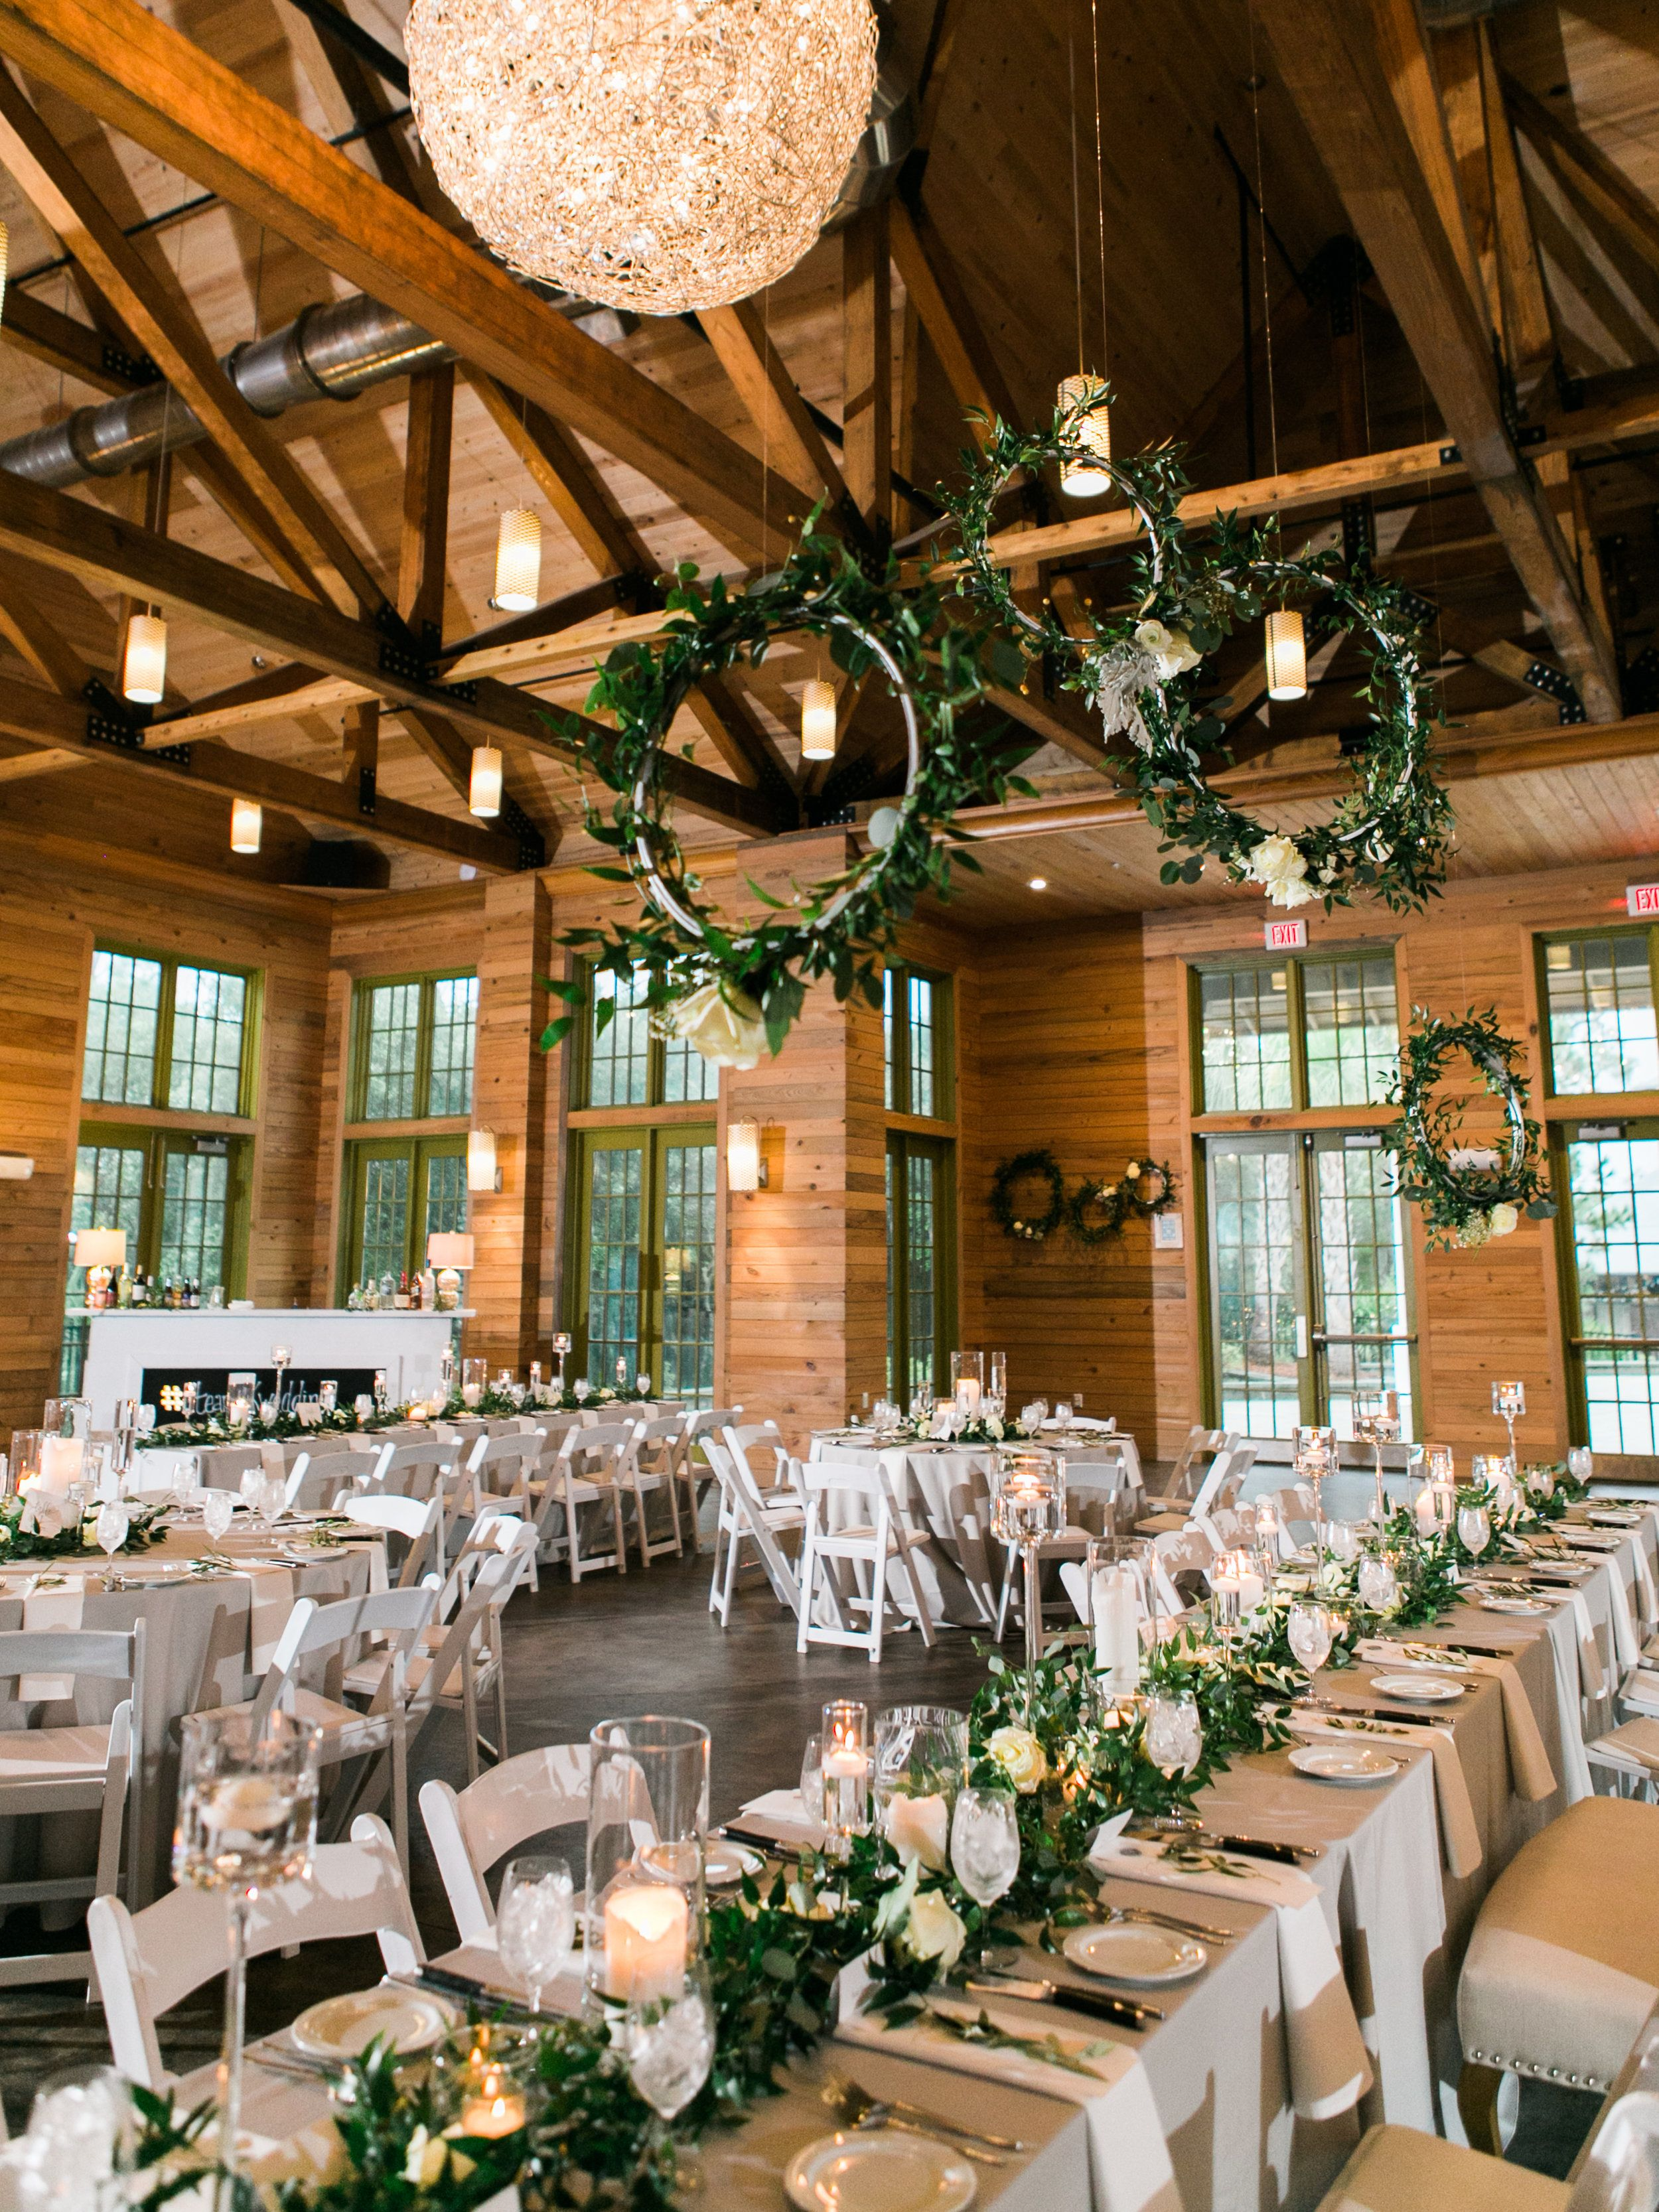 Our Best Day Ever Ethereal Wedding Barn Wedding Decorations